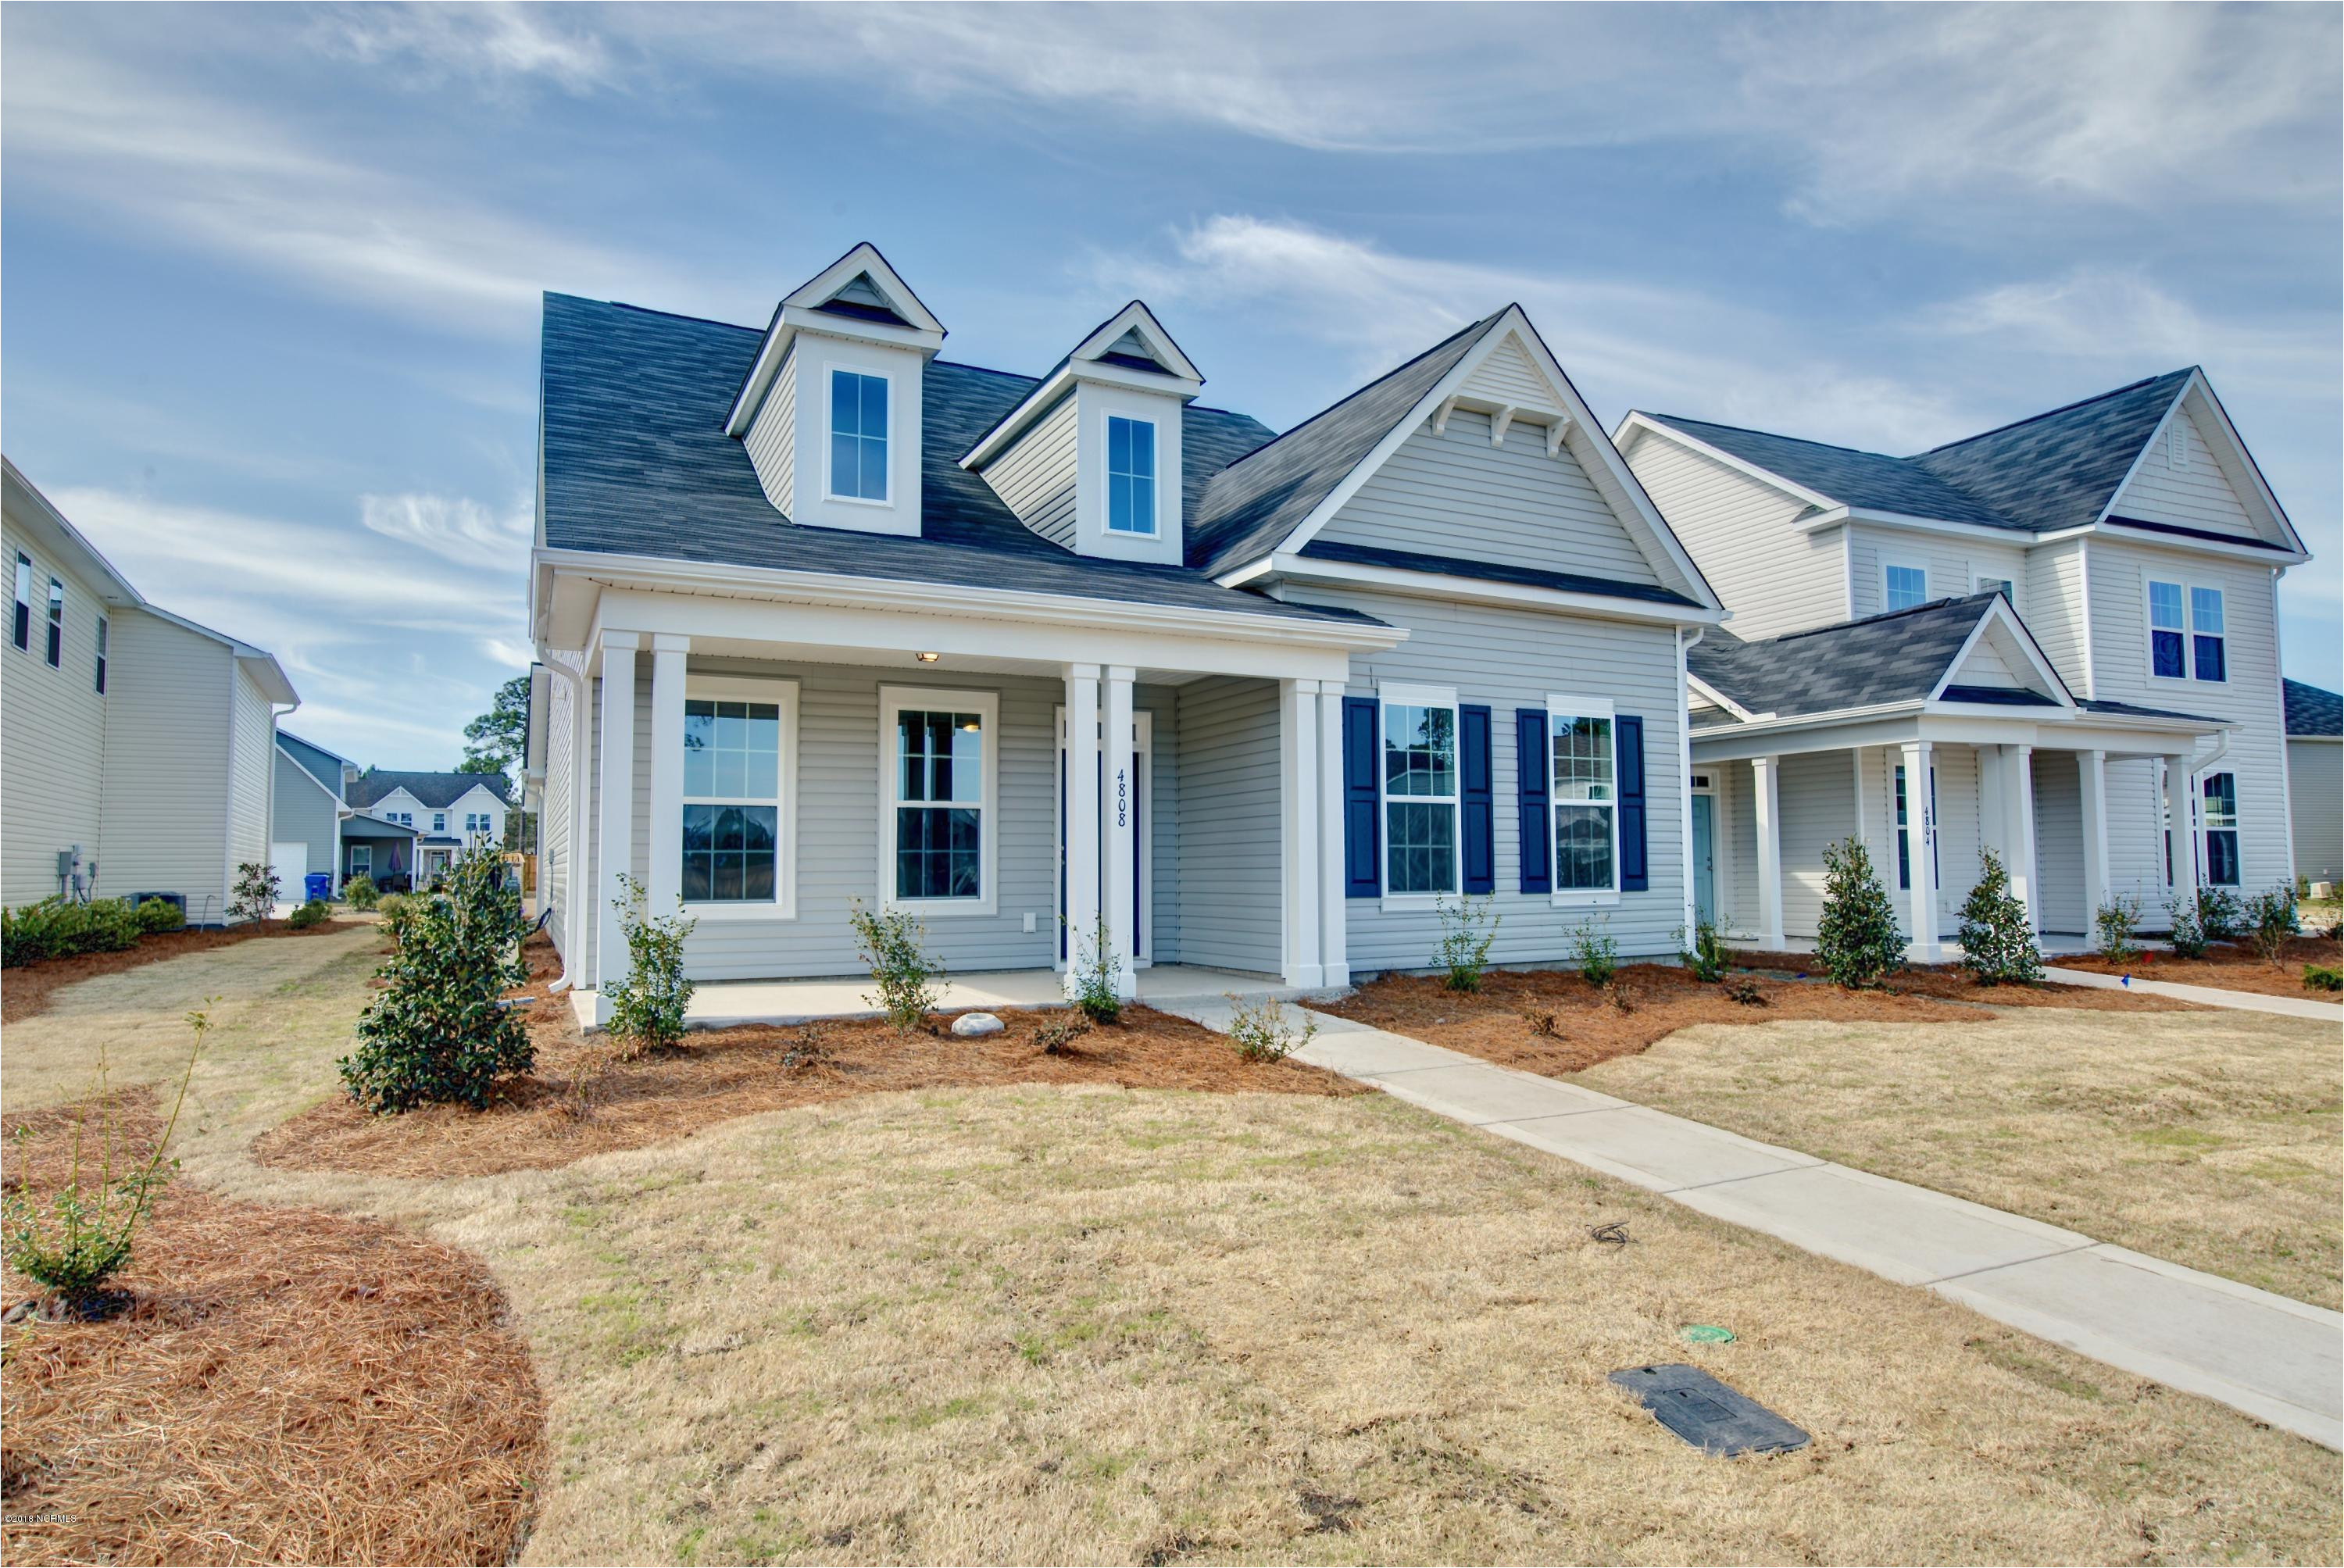 4812 inlet trail wilmington nc 28411 wilmington nc real estate listing